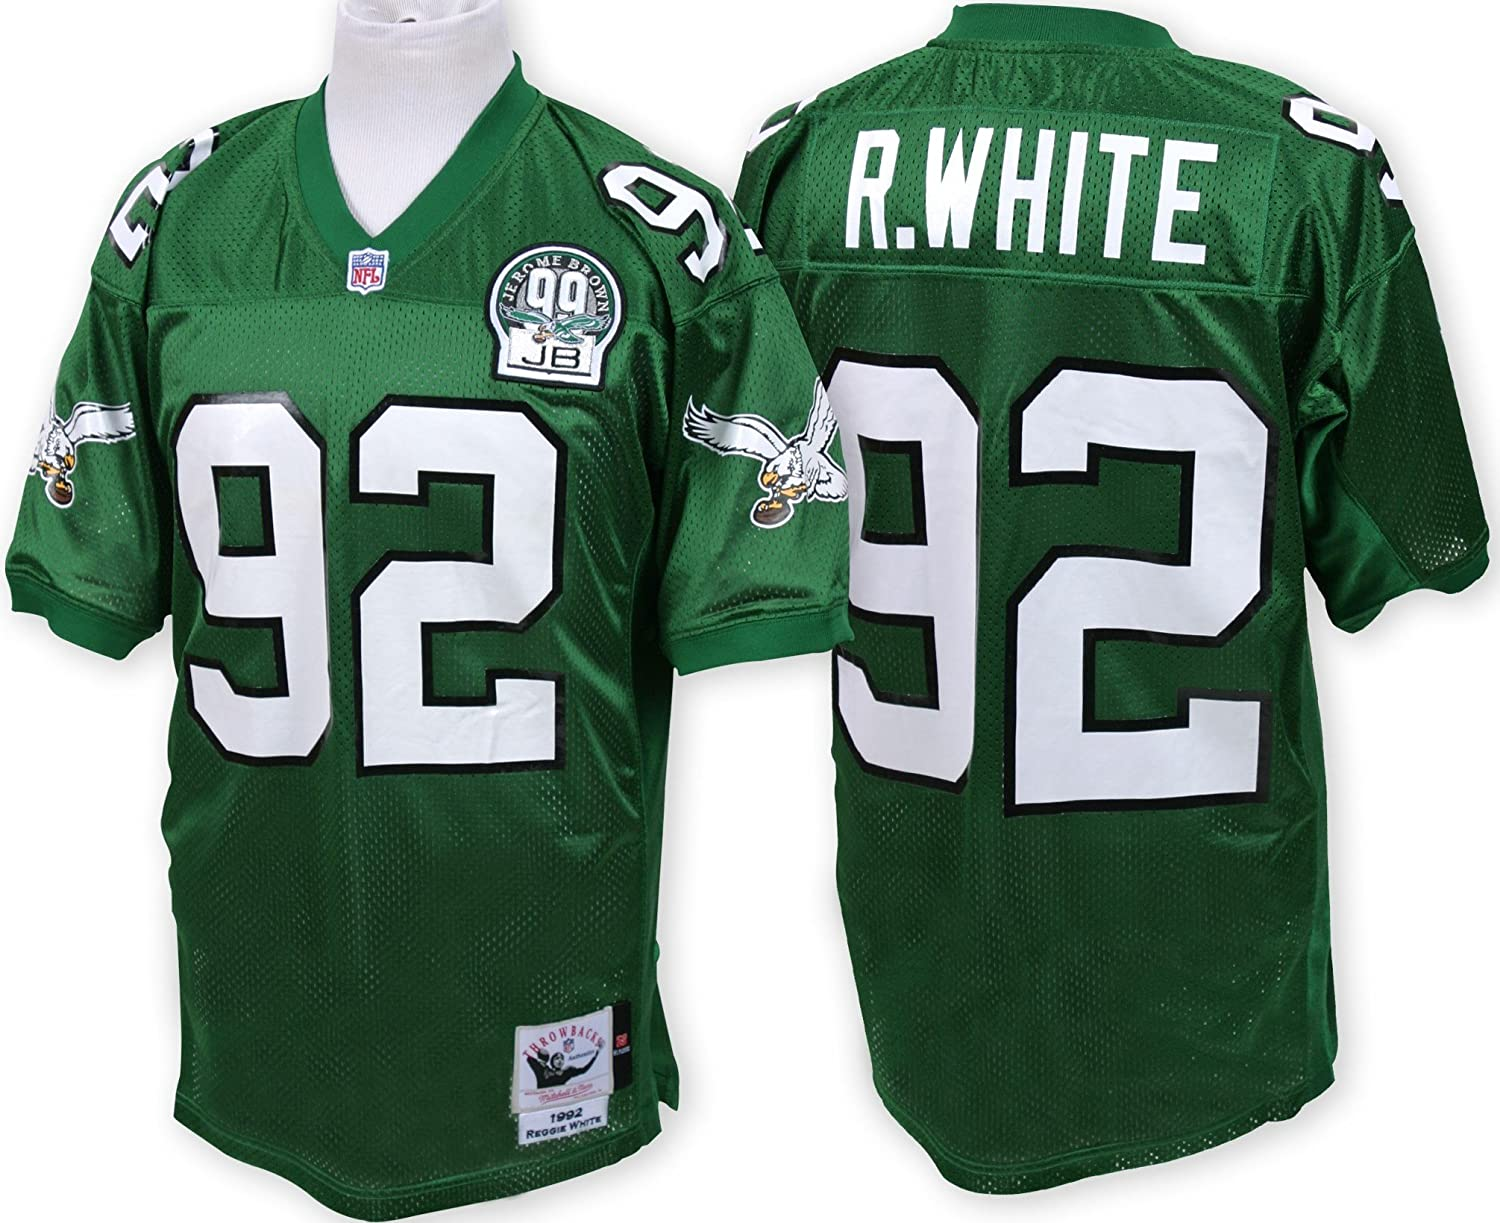 Jersey Amazon White 1992 Eagles Philadelphia Sports com Ness Nfl Green Authentic Mitchell Outdoors amp; Reggie